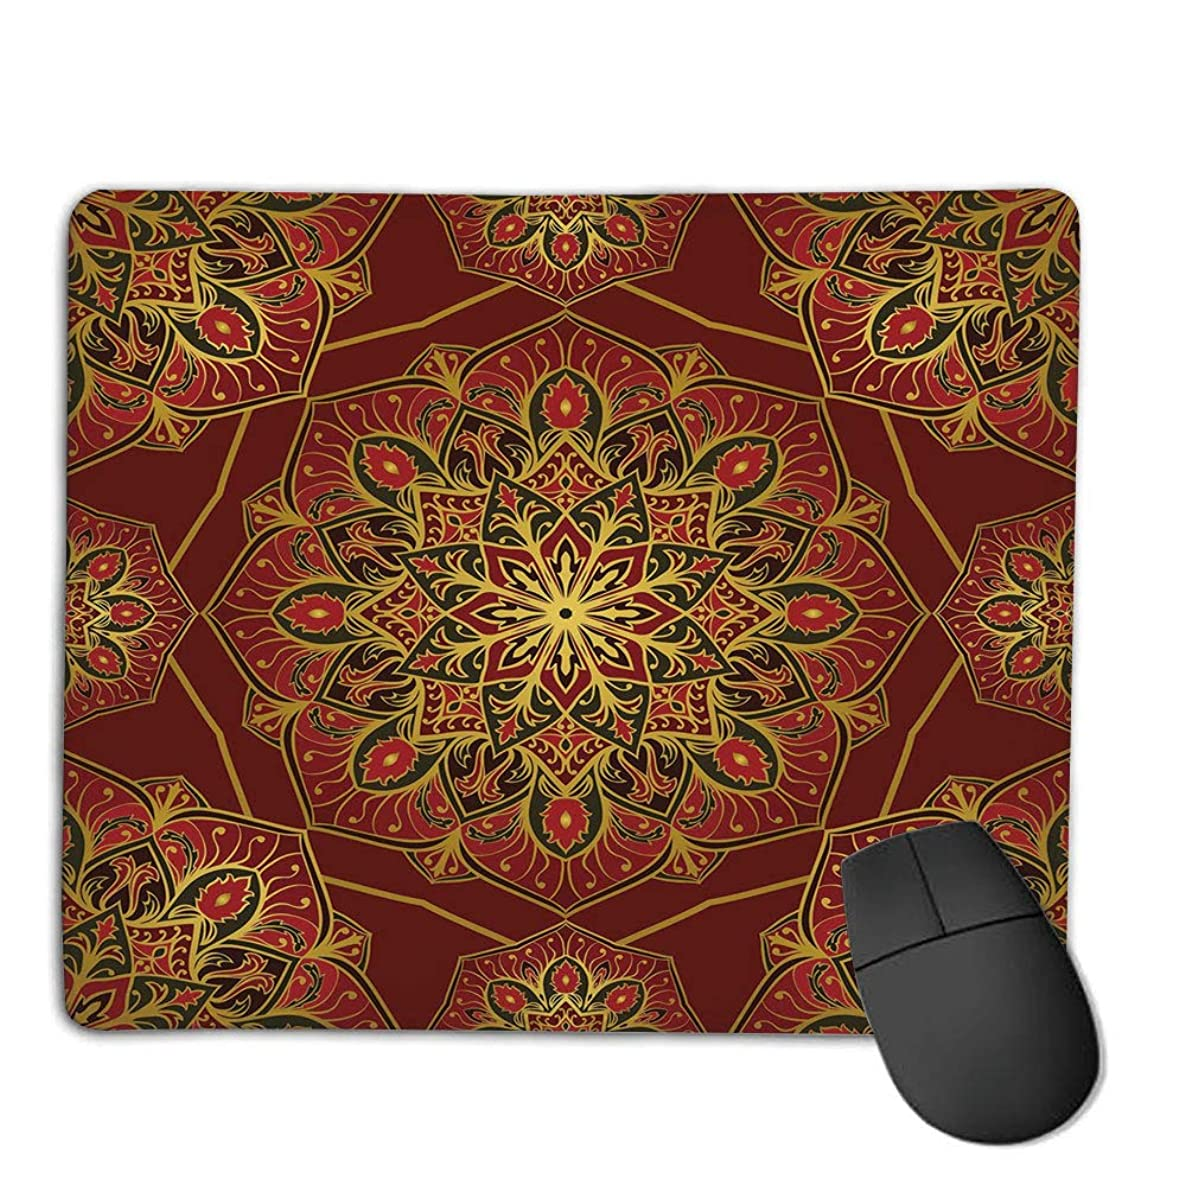 Computer Mouse Cushion and Natural Rubber Back and Cloth Surface,Maroon,Rich Colorful Ornament Symbol of Cosmos in Arabic Style Medieval Artistic Decorative,Maroon Yellow Black,Applies to Games,Home